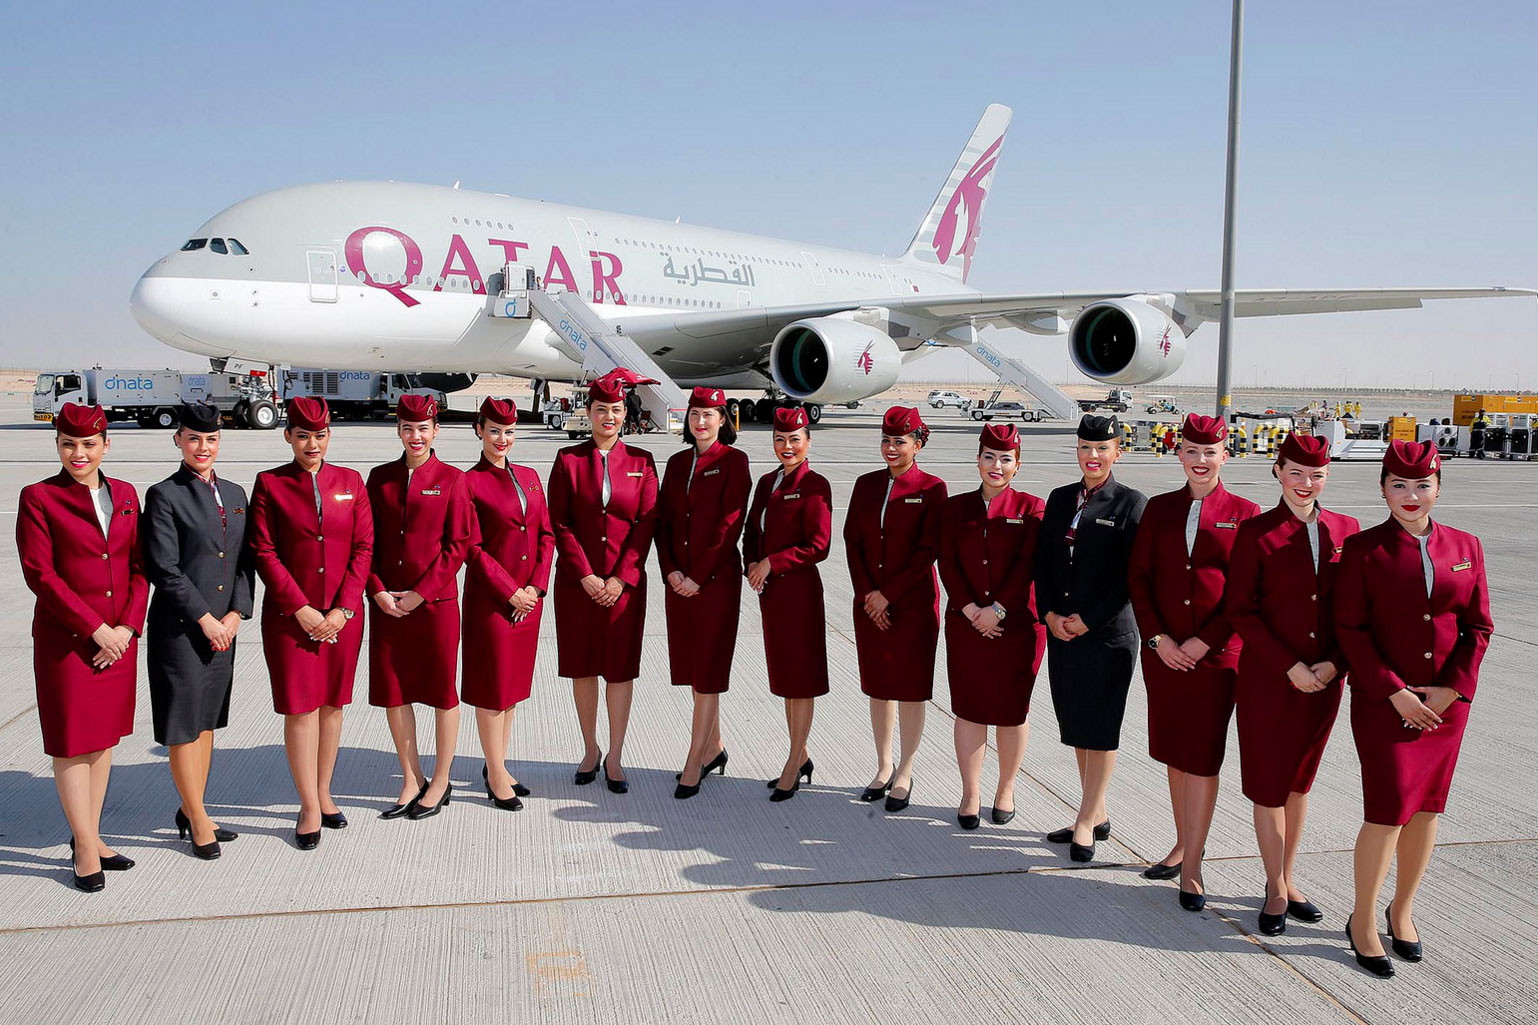 Qatar Airways Deals For You Visit Us Today For Low Prices!